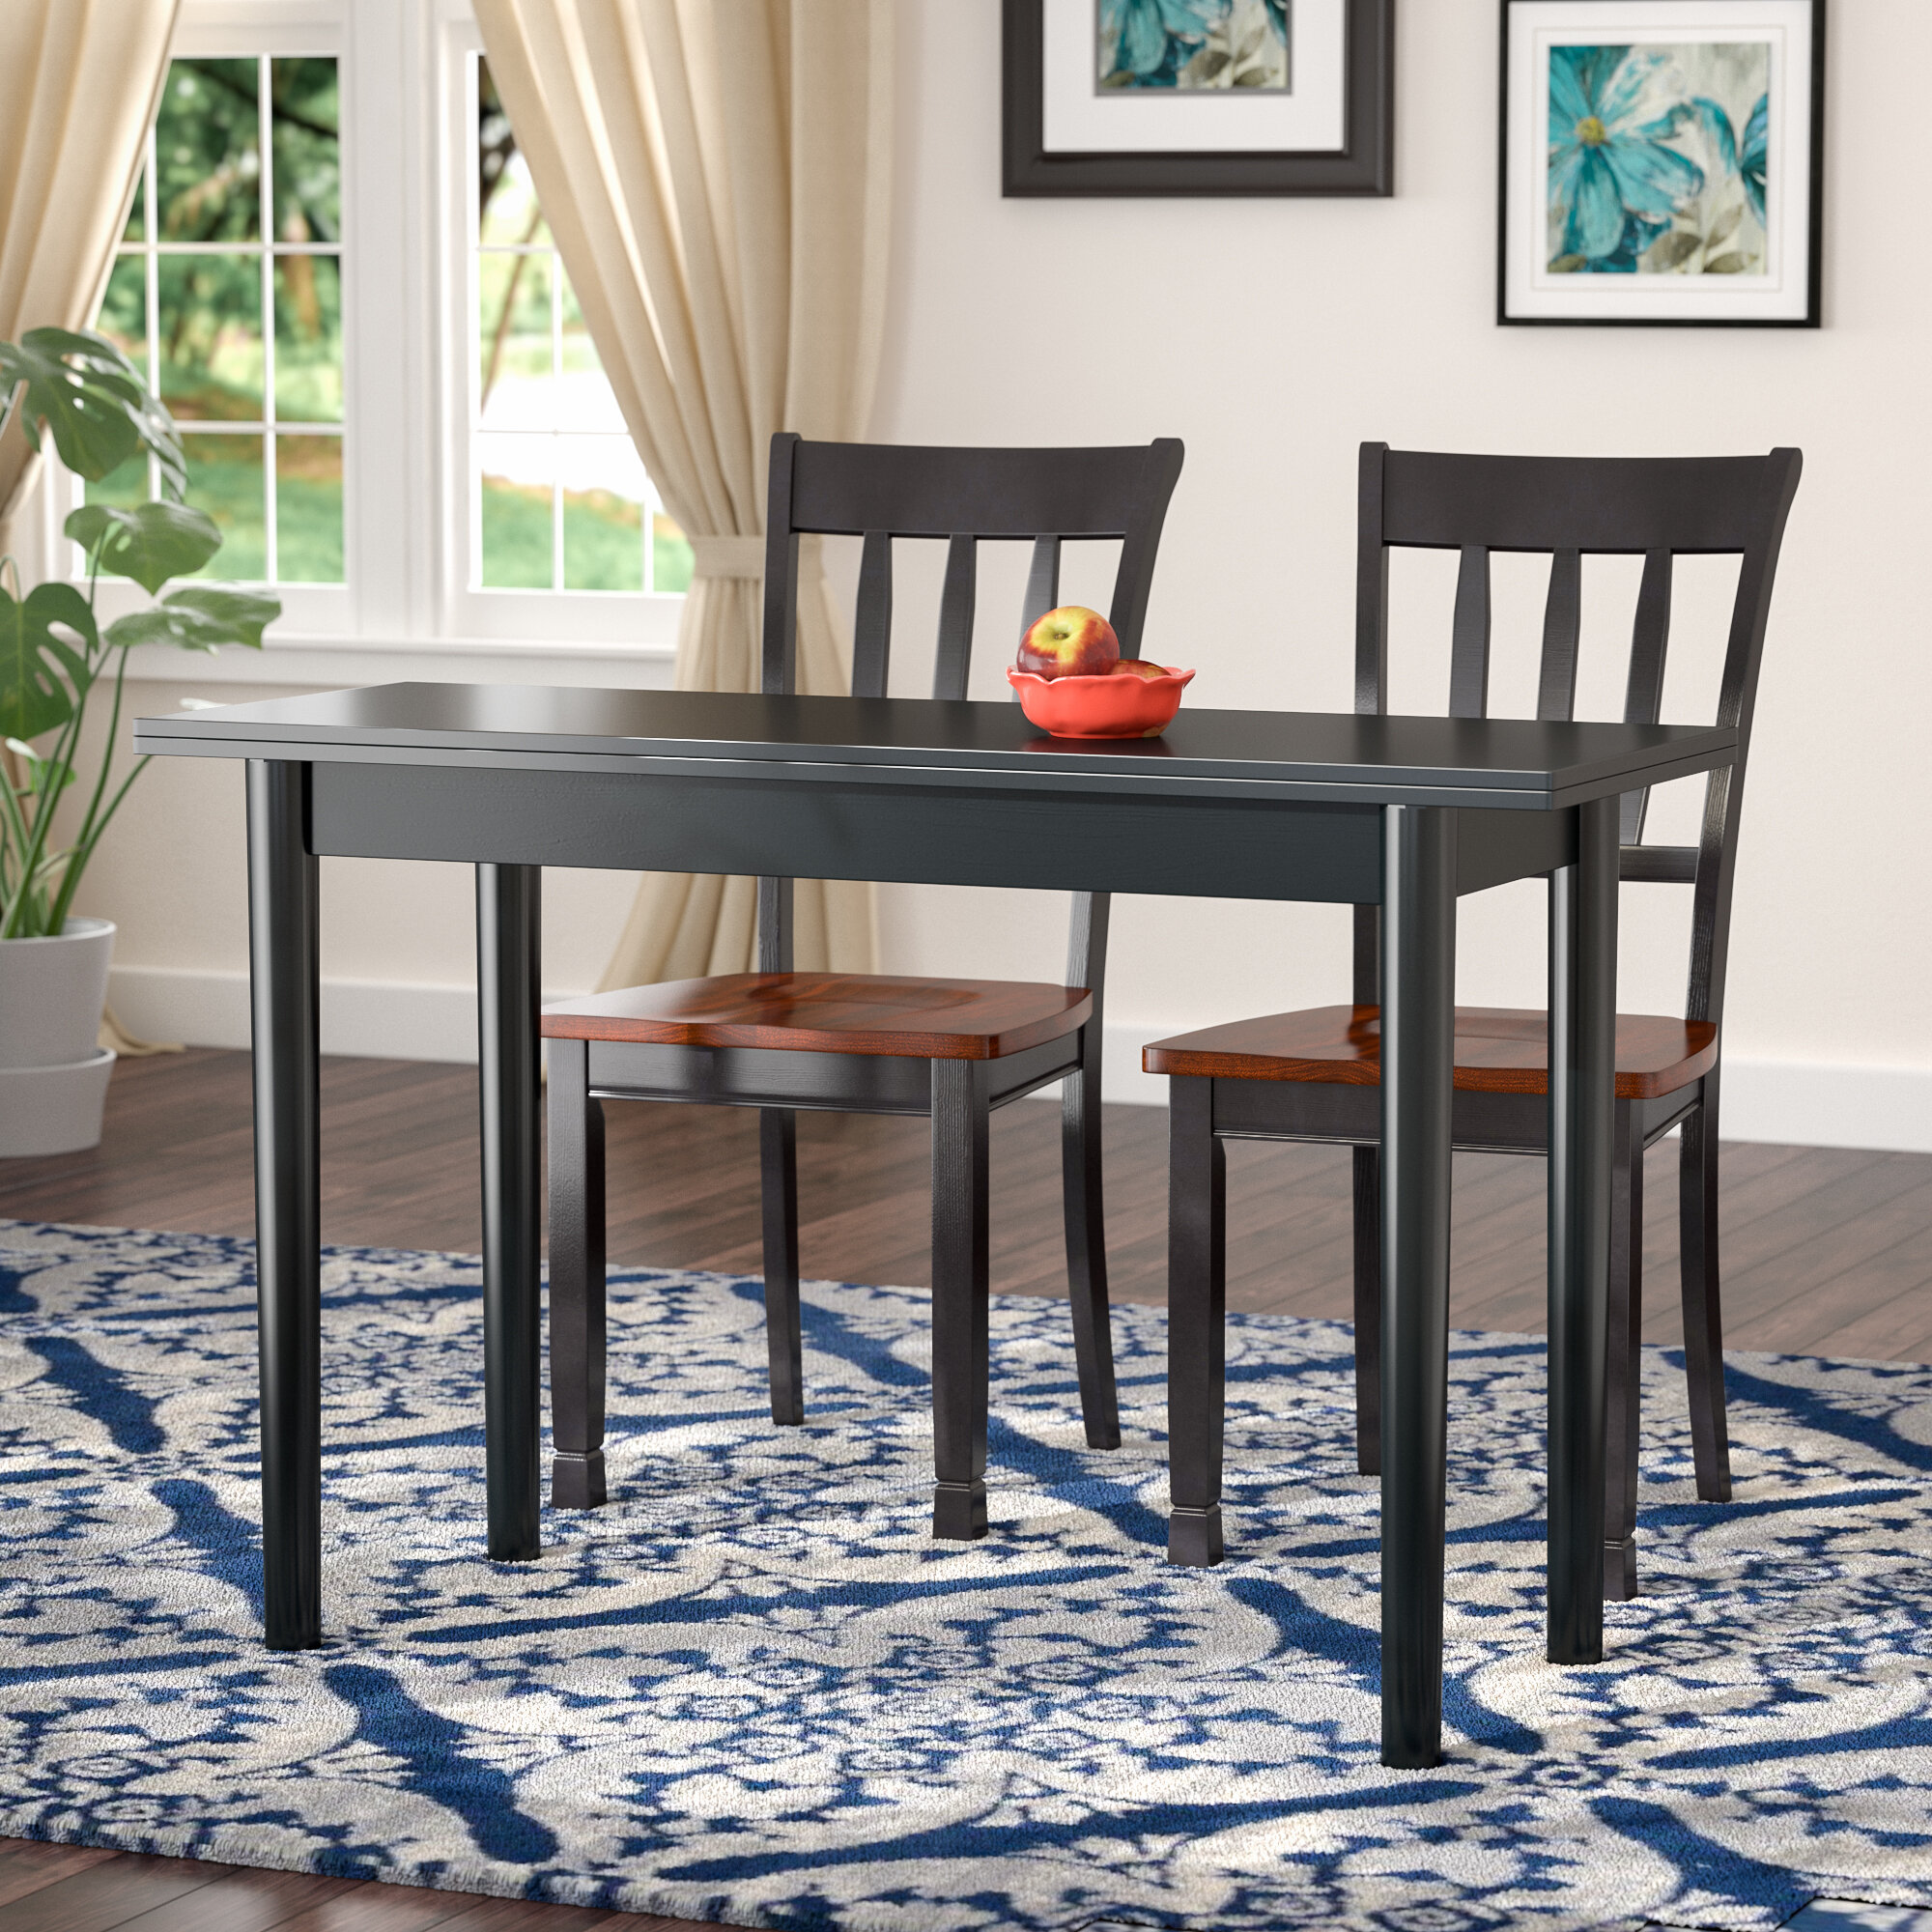 Beautiful Flip Top Dining Room Table Contemporary House Design